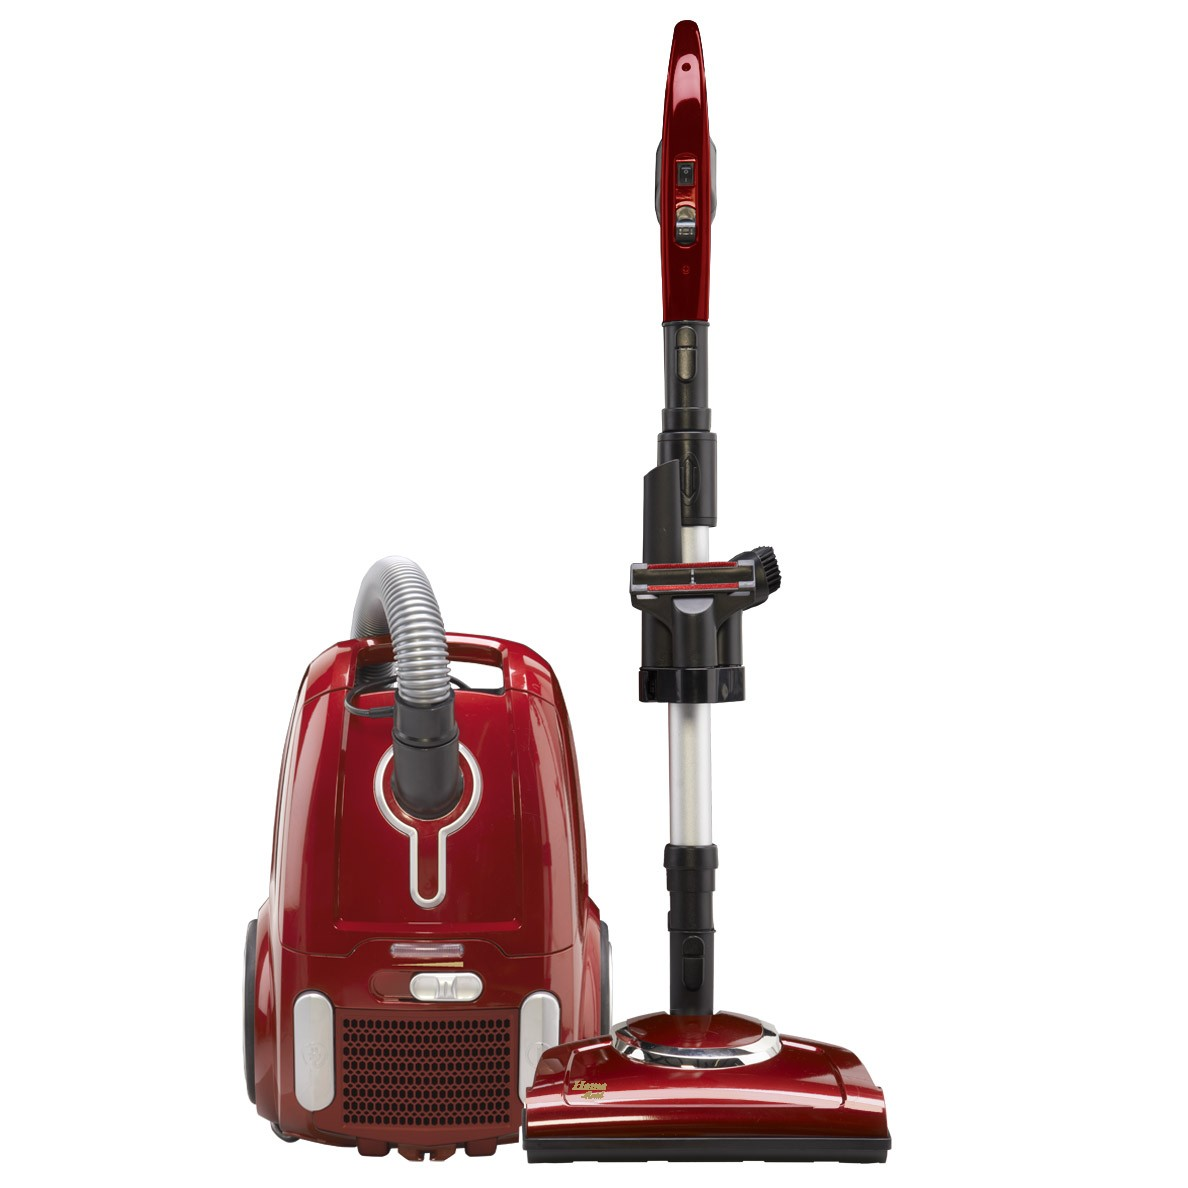 Compare Fuller Brush Canister Vacuum Cleaners